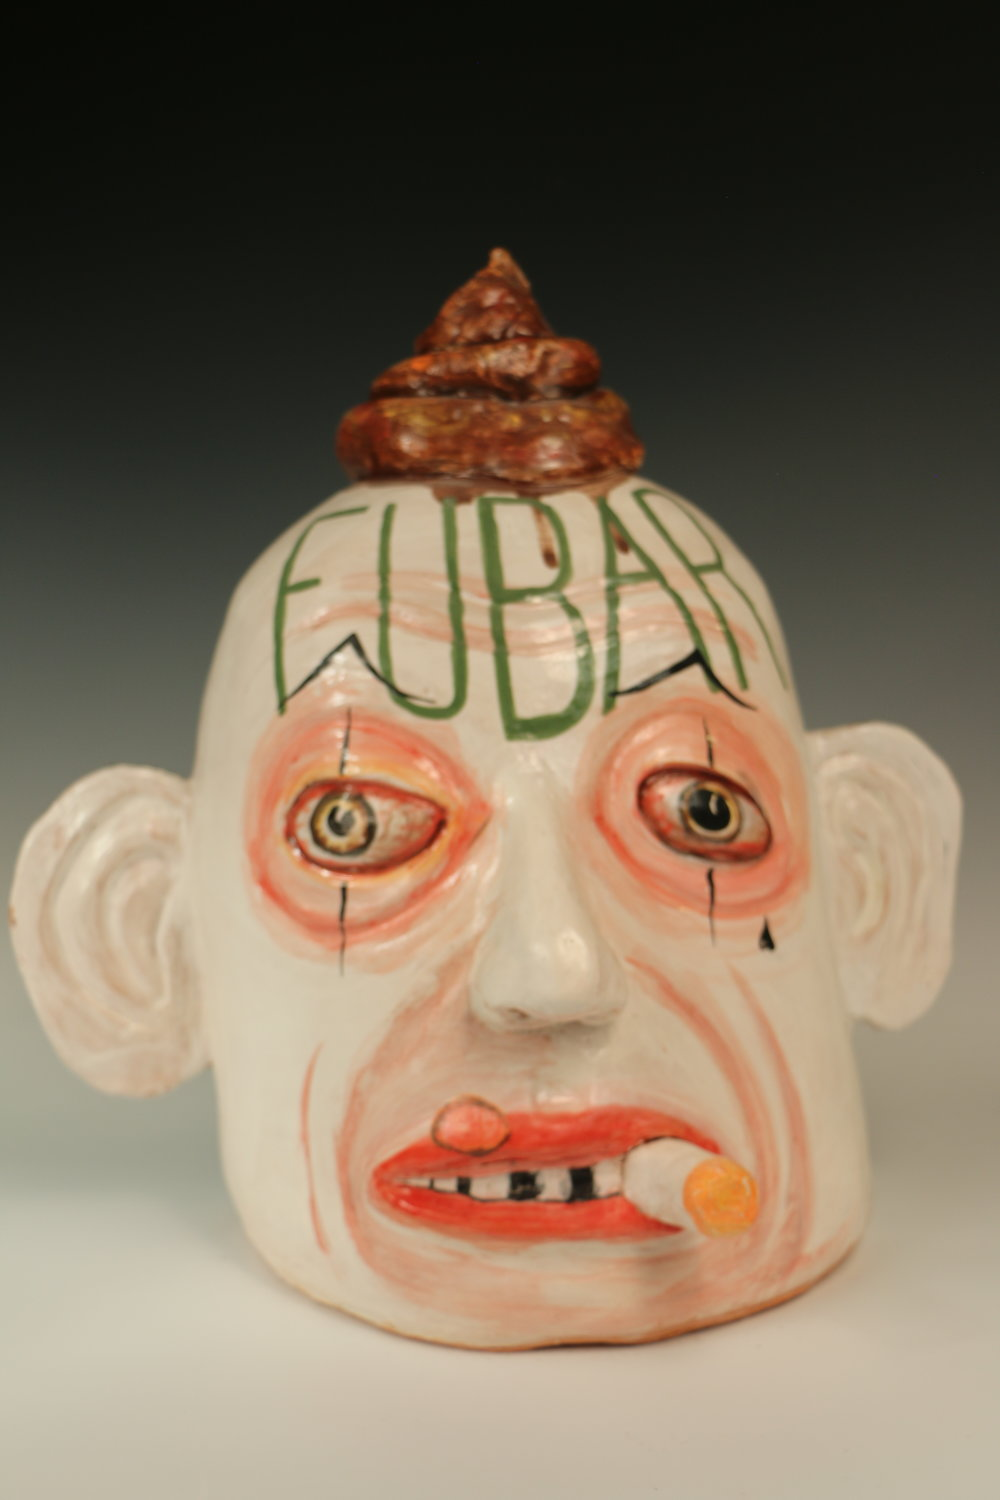 The Rat Trap Clay Club - The Rat Trap Clay Club is a community-based collaborative ceramics group. We bring together ceramic artists, painters, sculptors and creative individuals to make ceramic objects that address political, cultural and social themes.